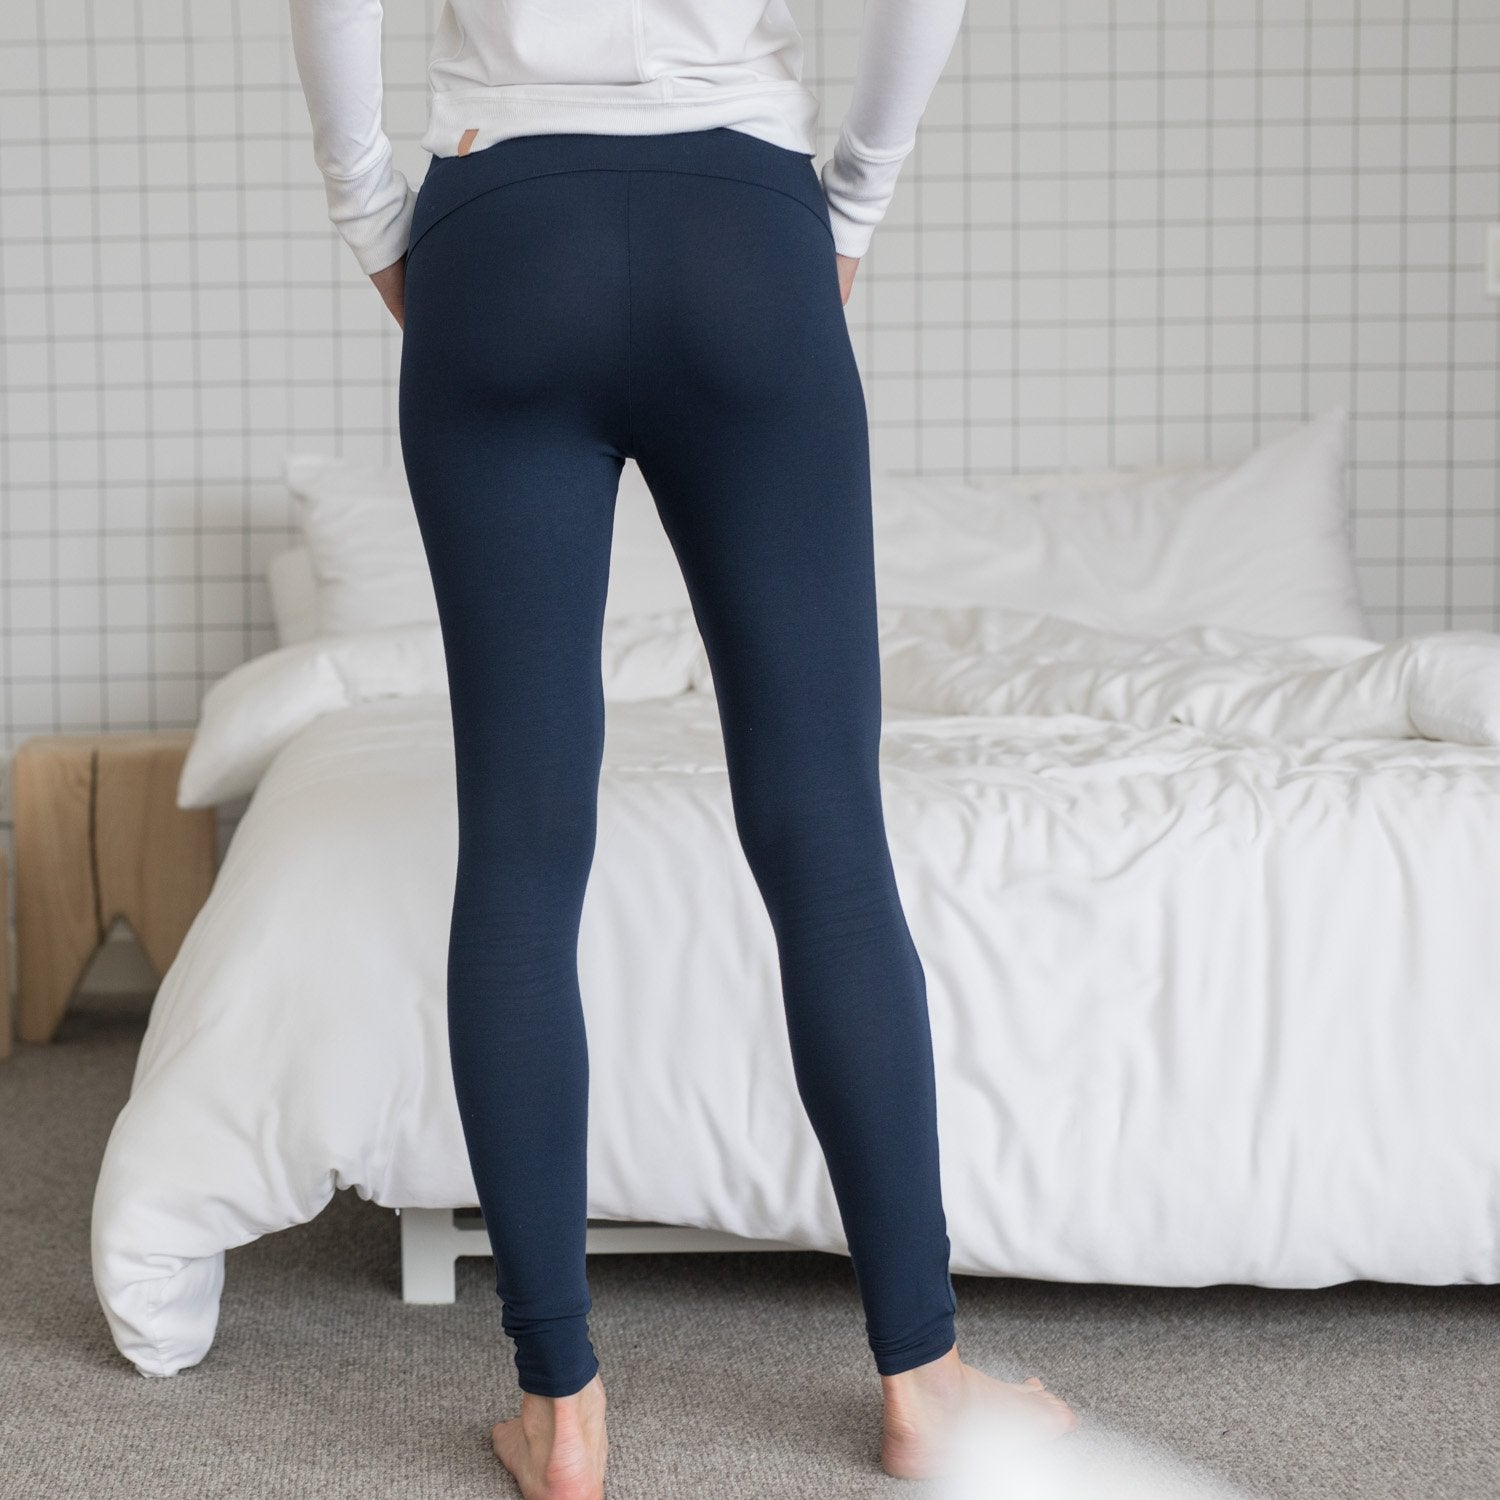 Lunya Sleepwear Siro Pocket Legging - #Deep Night